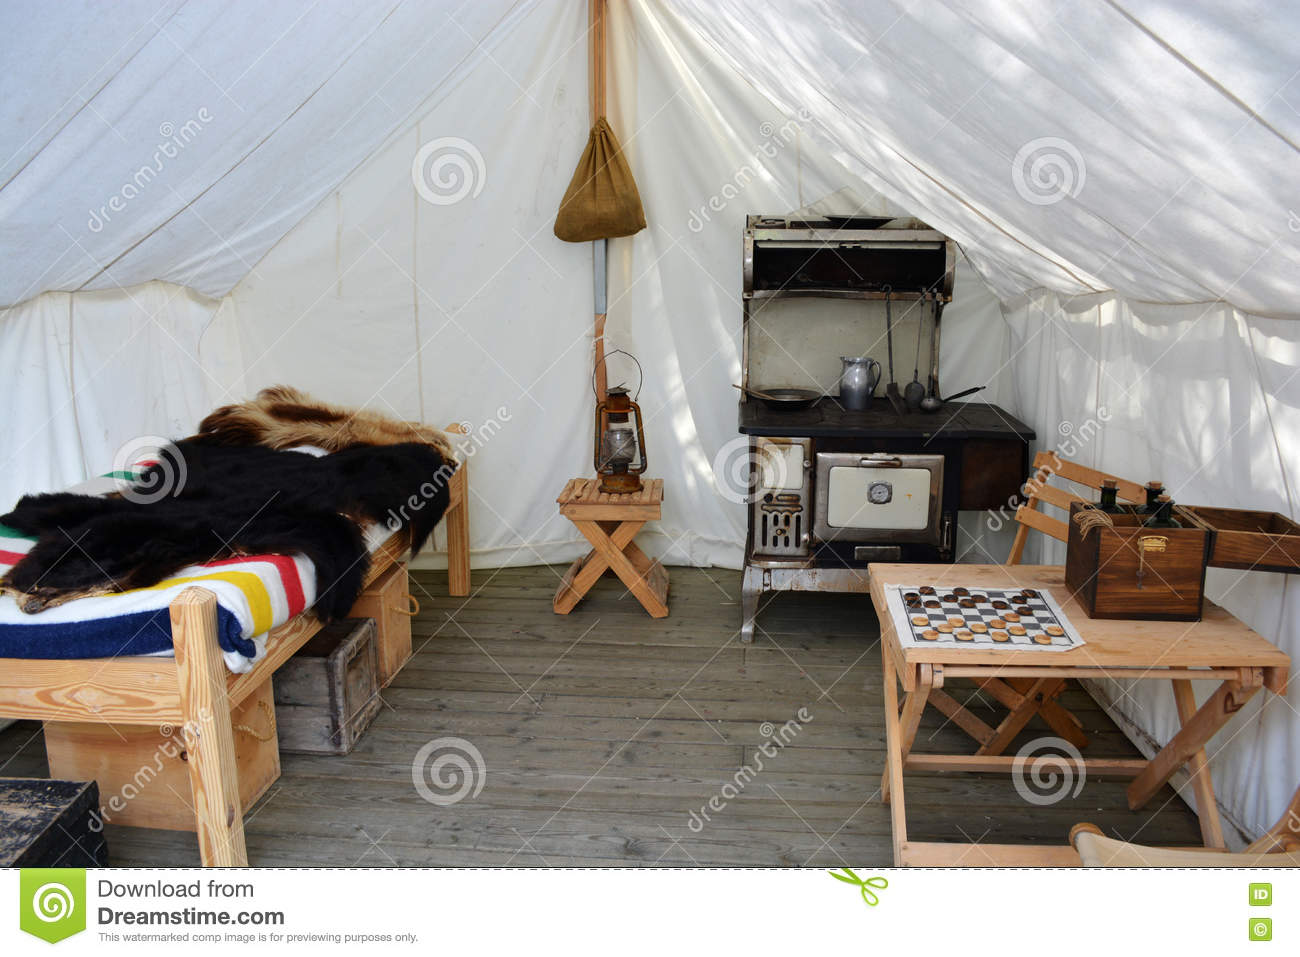 Old Western Prospectoru0027s / Traderu0027s Tent Stock Photography & Prospector tent stock image. Image of magic montreal - 83370697